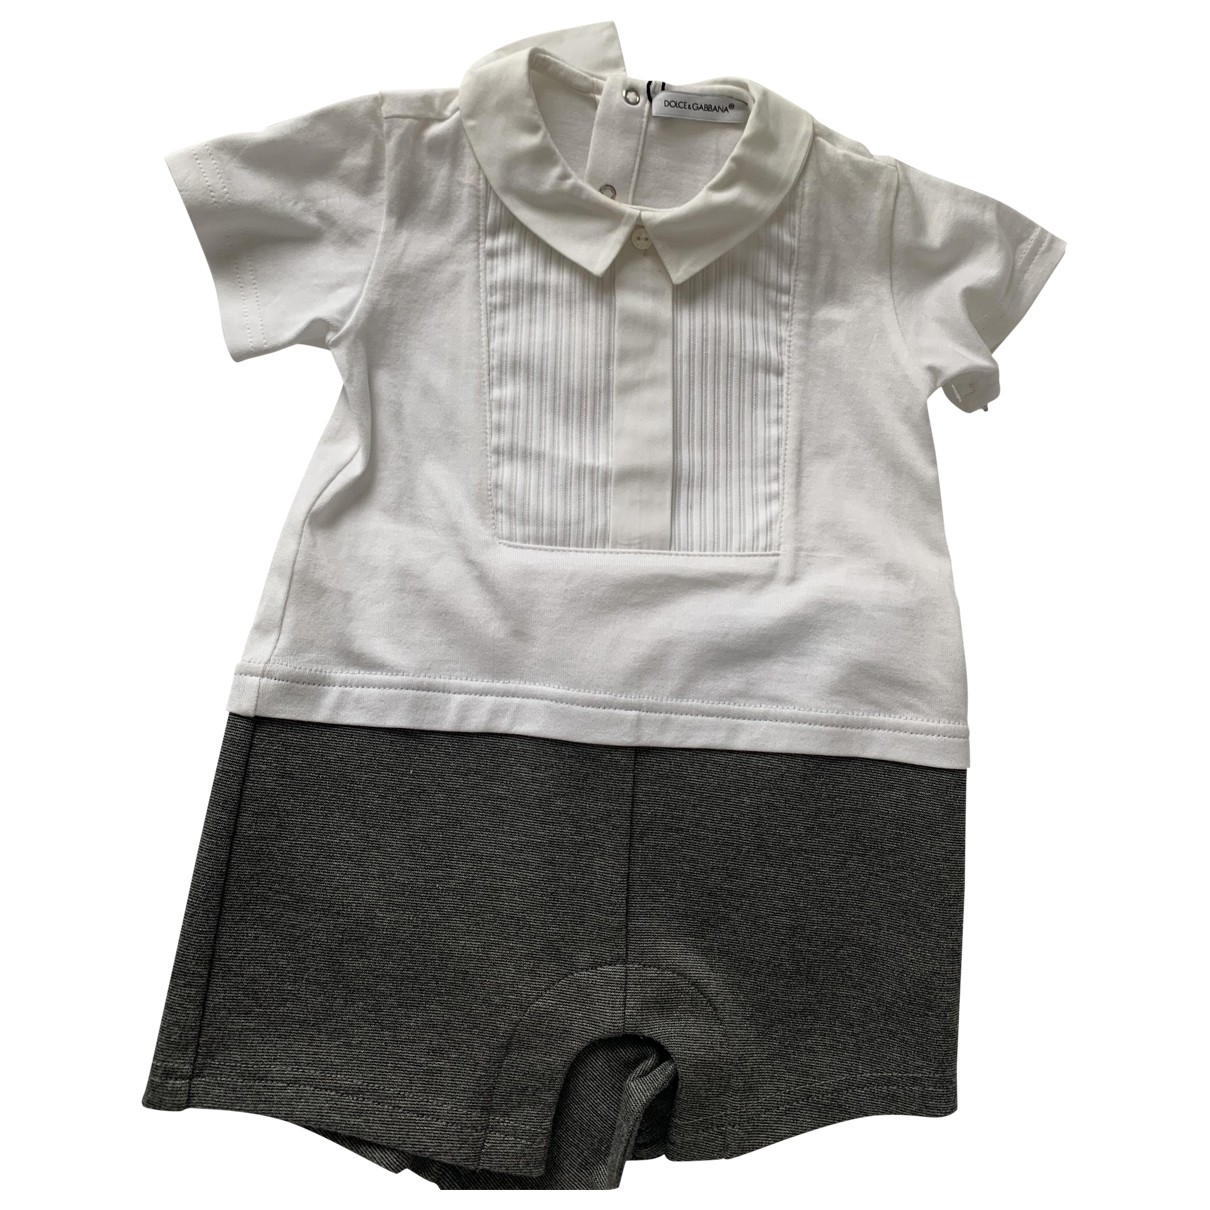 Dolce & Gabbana \N White Cotton Outfits for Kids 9 months - until 28 inches UK